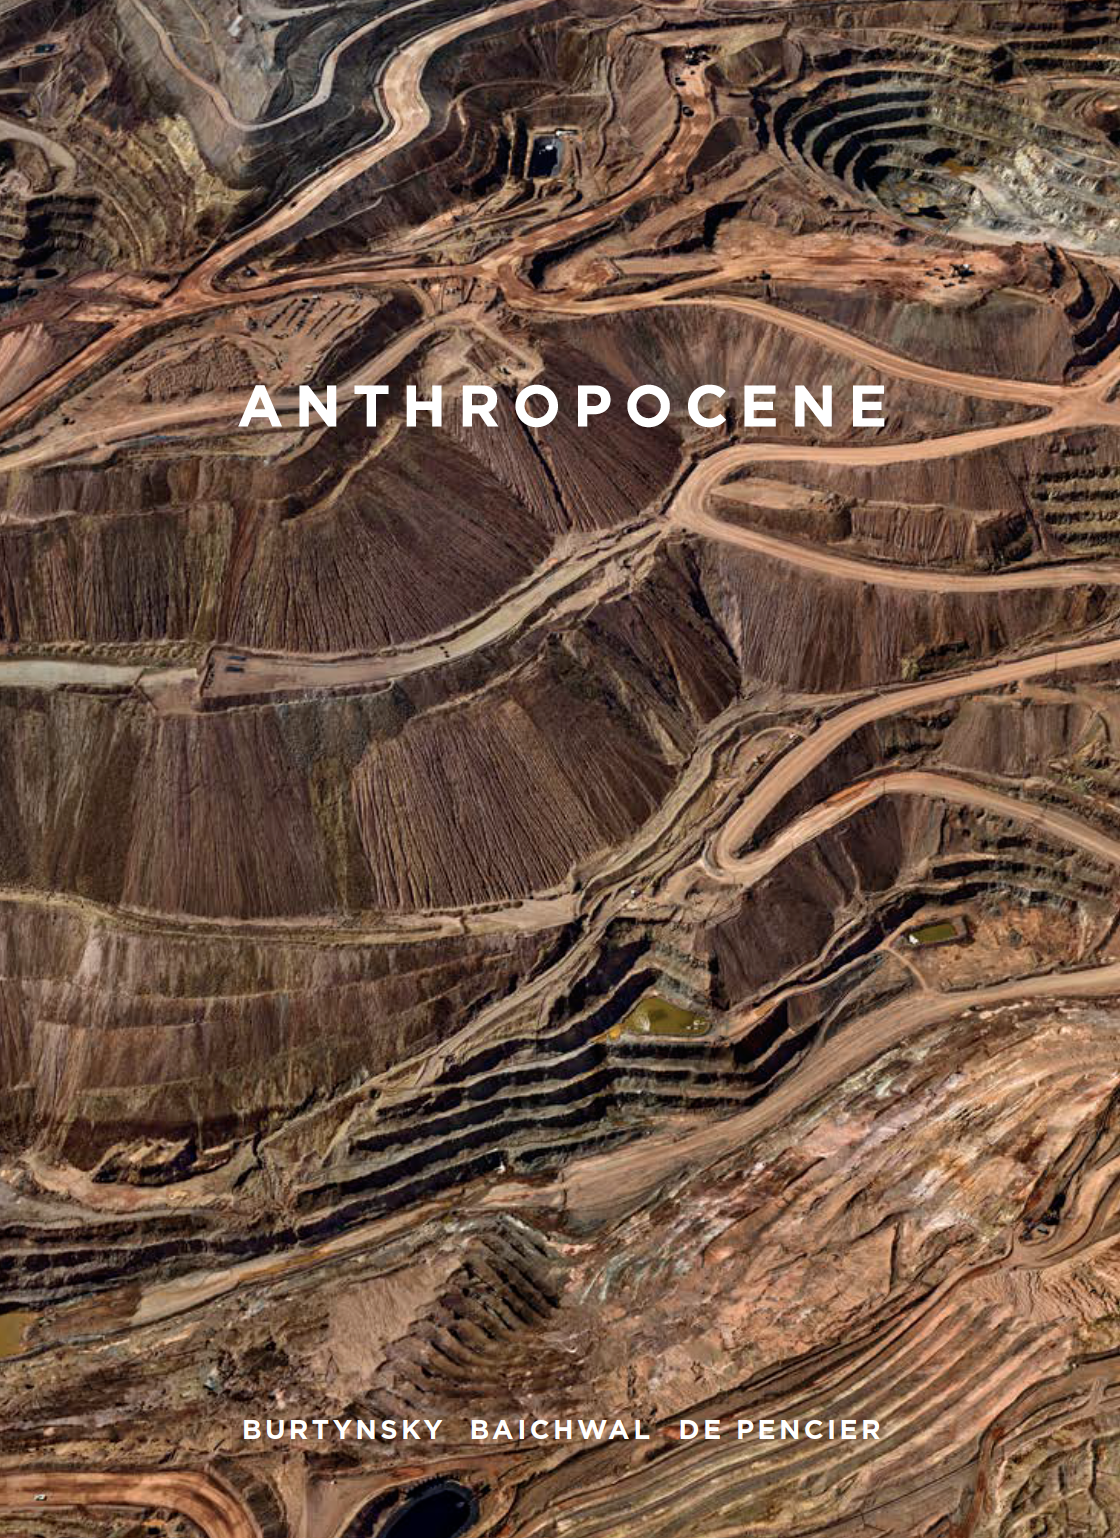 The front cover image for the Anthropocene exhibition catalogue from the Art Gallery of Ontario, published by Goose Lane Editions